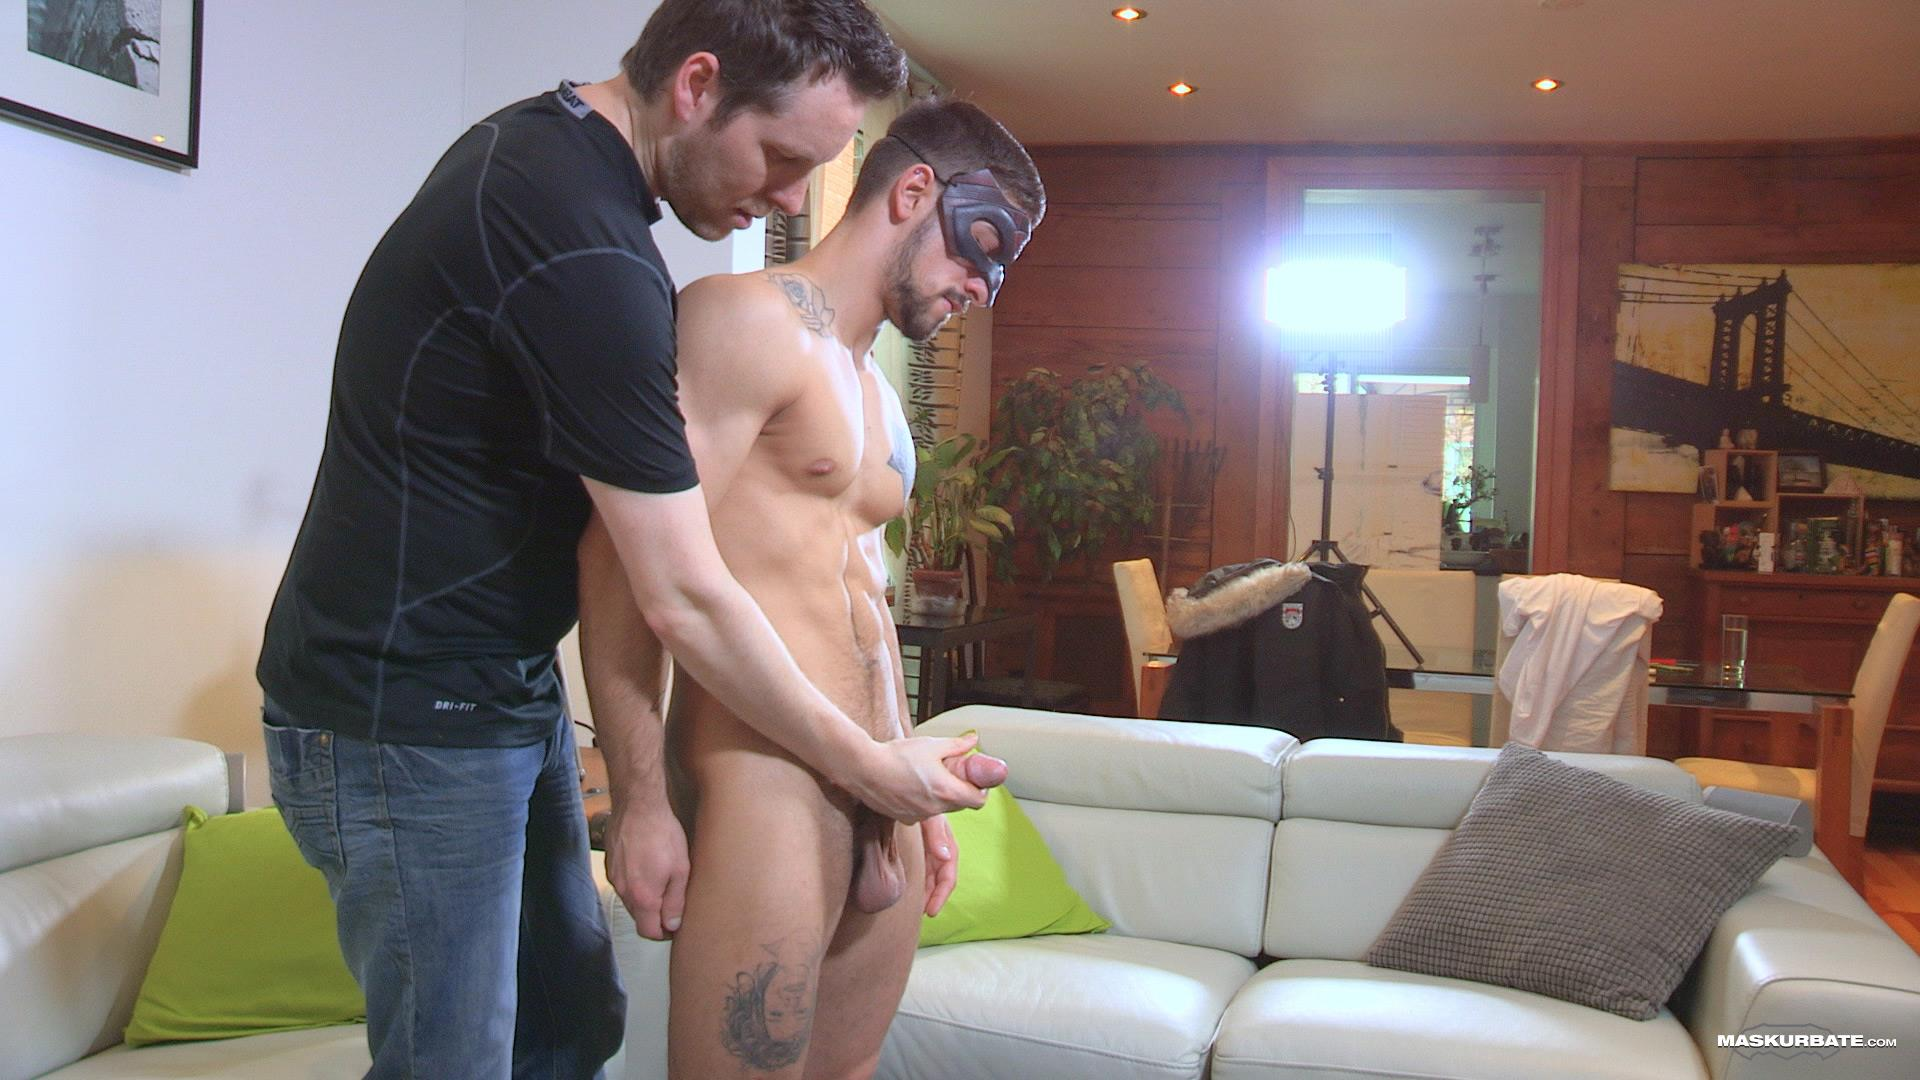 Maskurbate Carl Straight Muscle Jock With A Big Cock Amateur Gay Porn 06 Straight Muscle Hunk Gets His First Blow Job From Another Guy